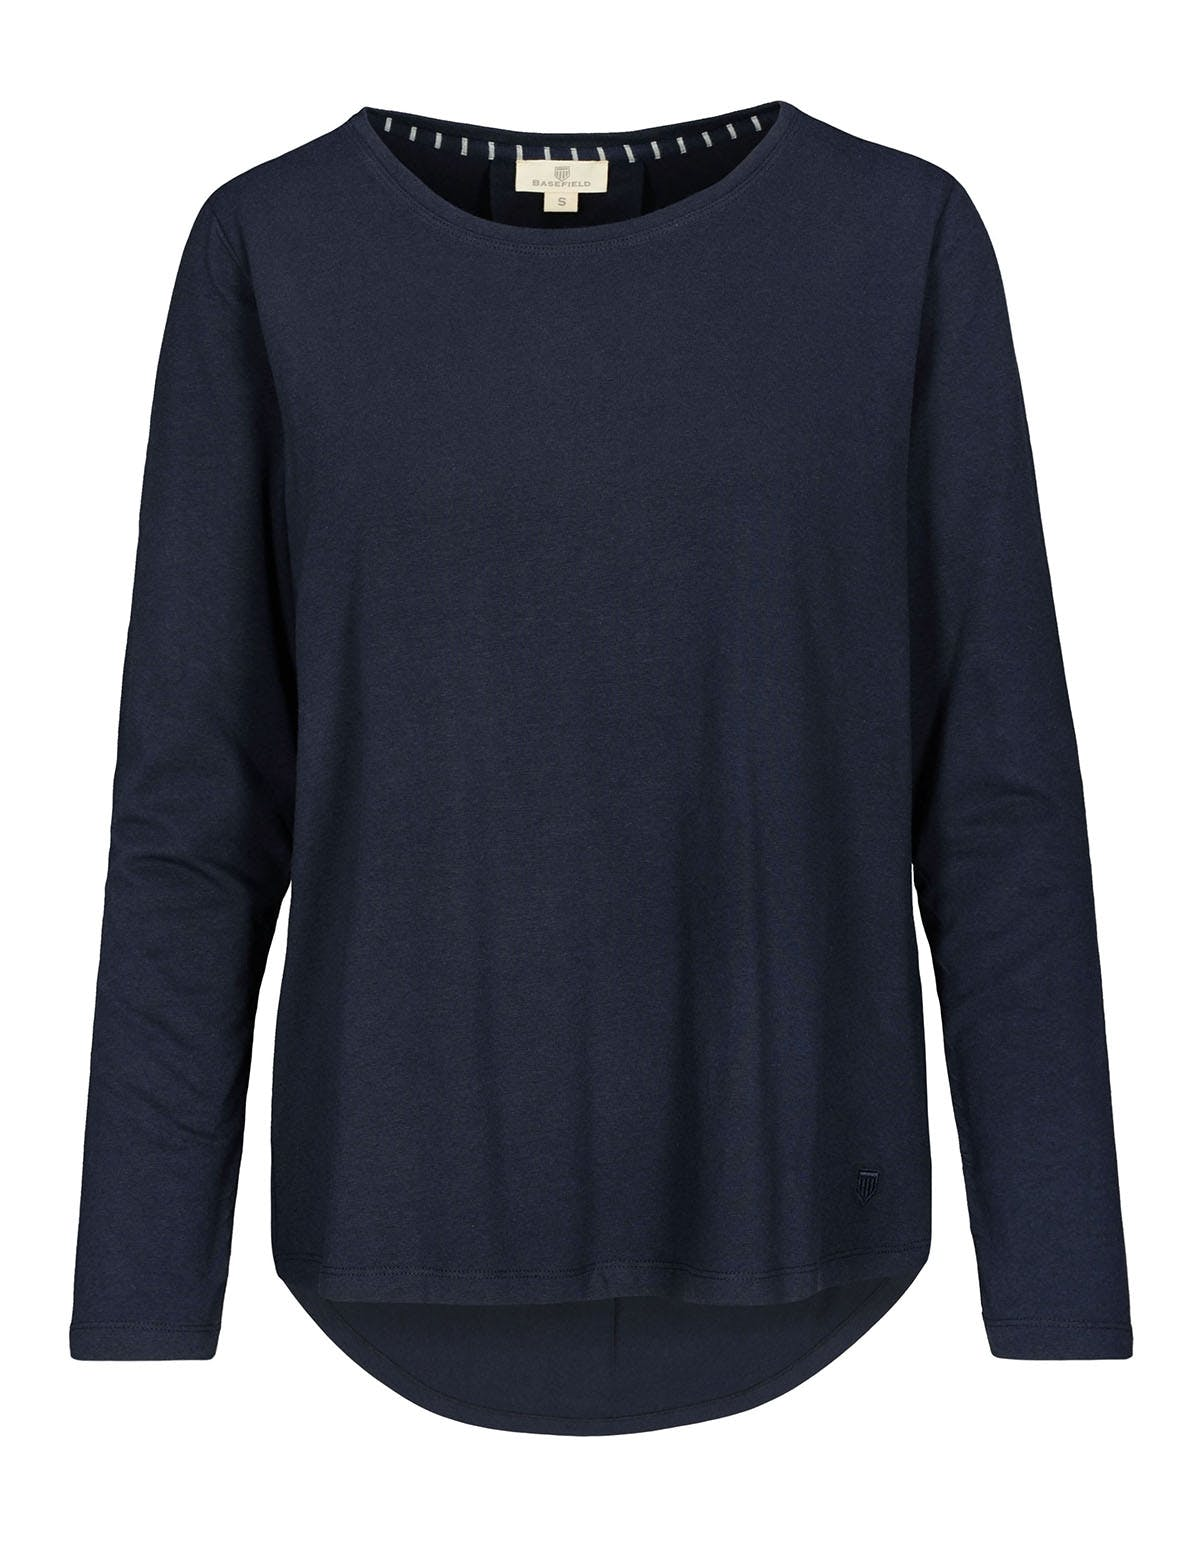 HOMEWARE Langarmshirt - Navy